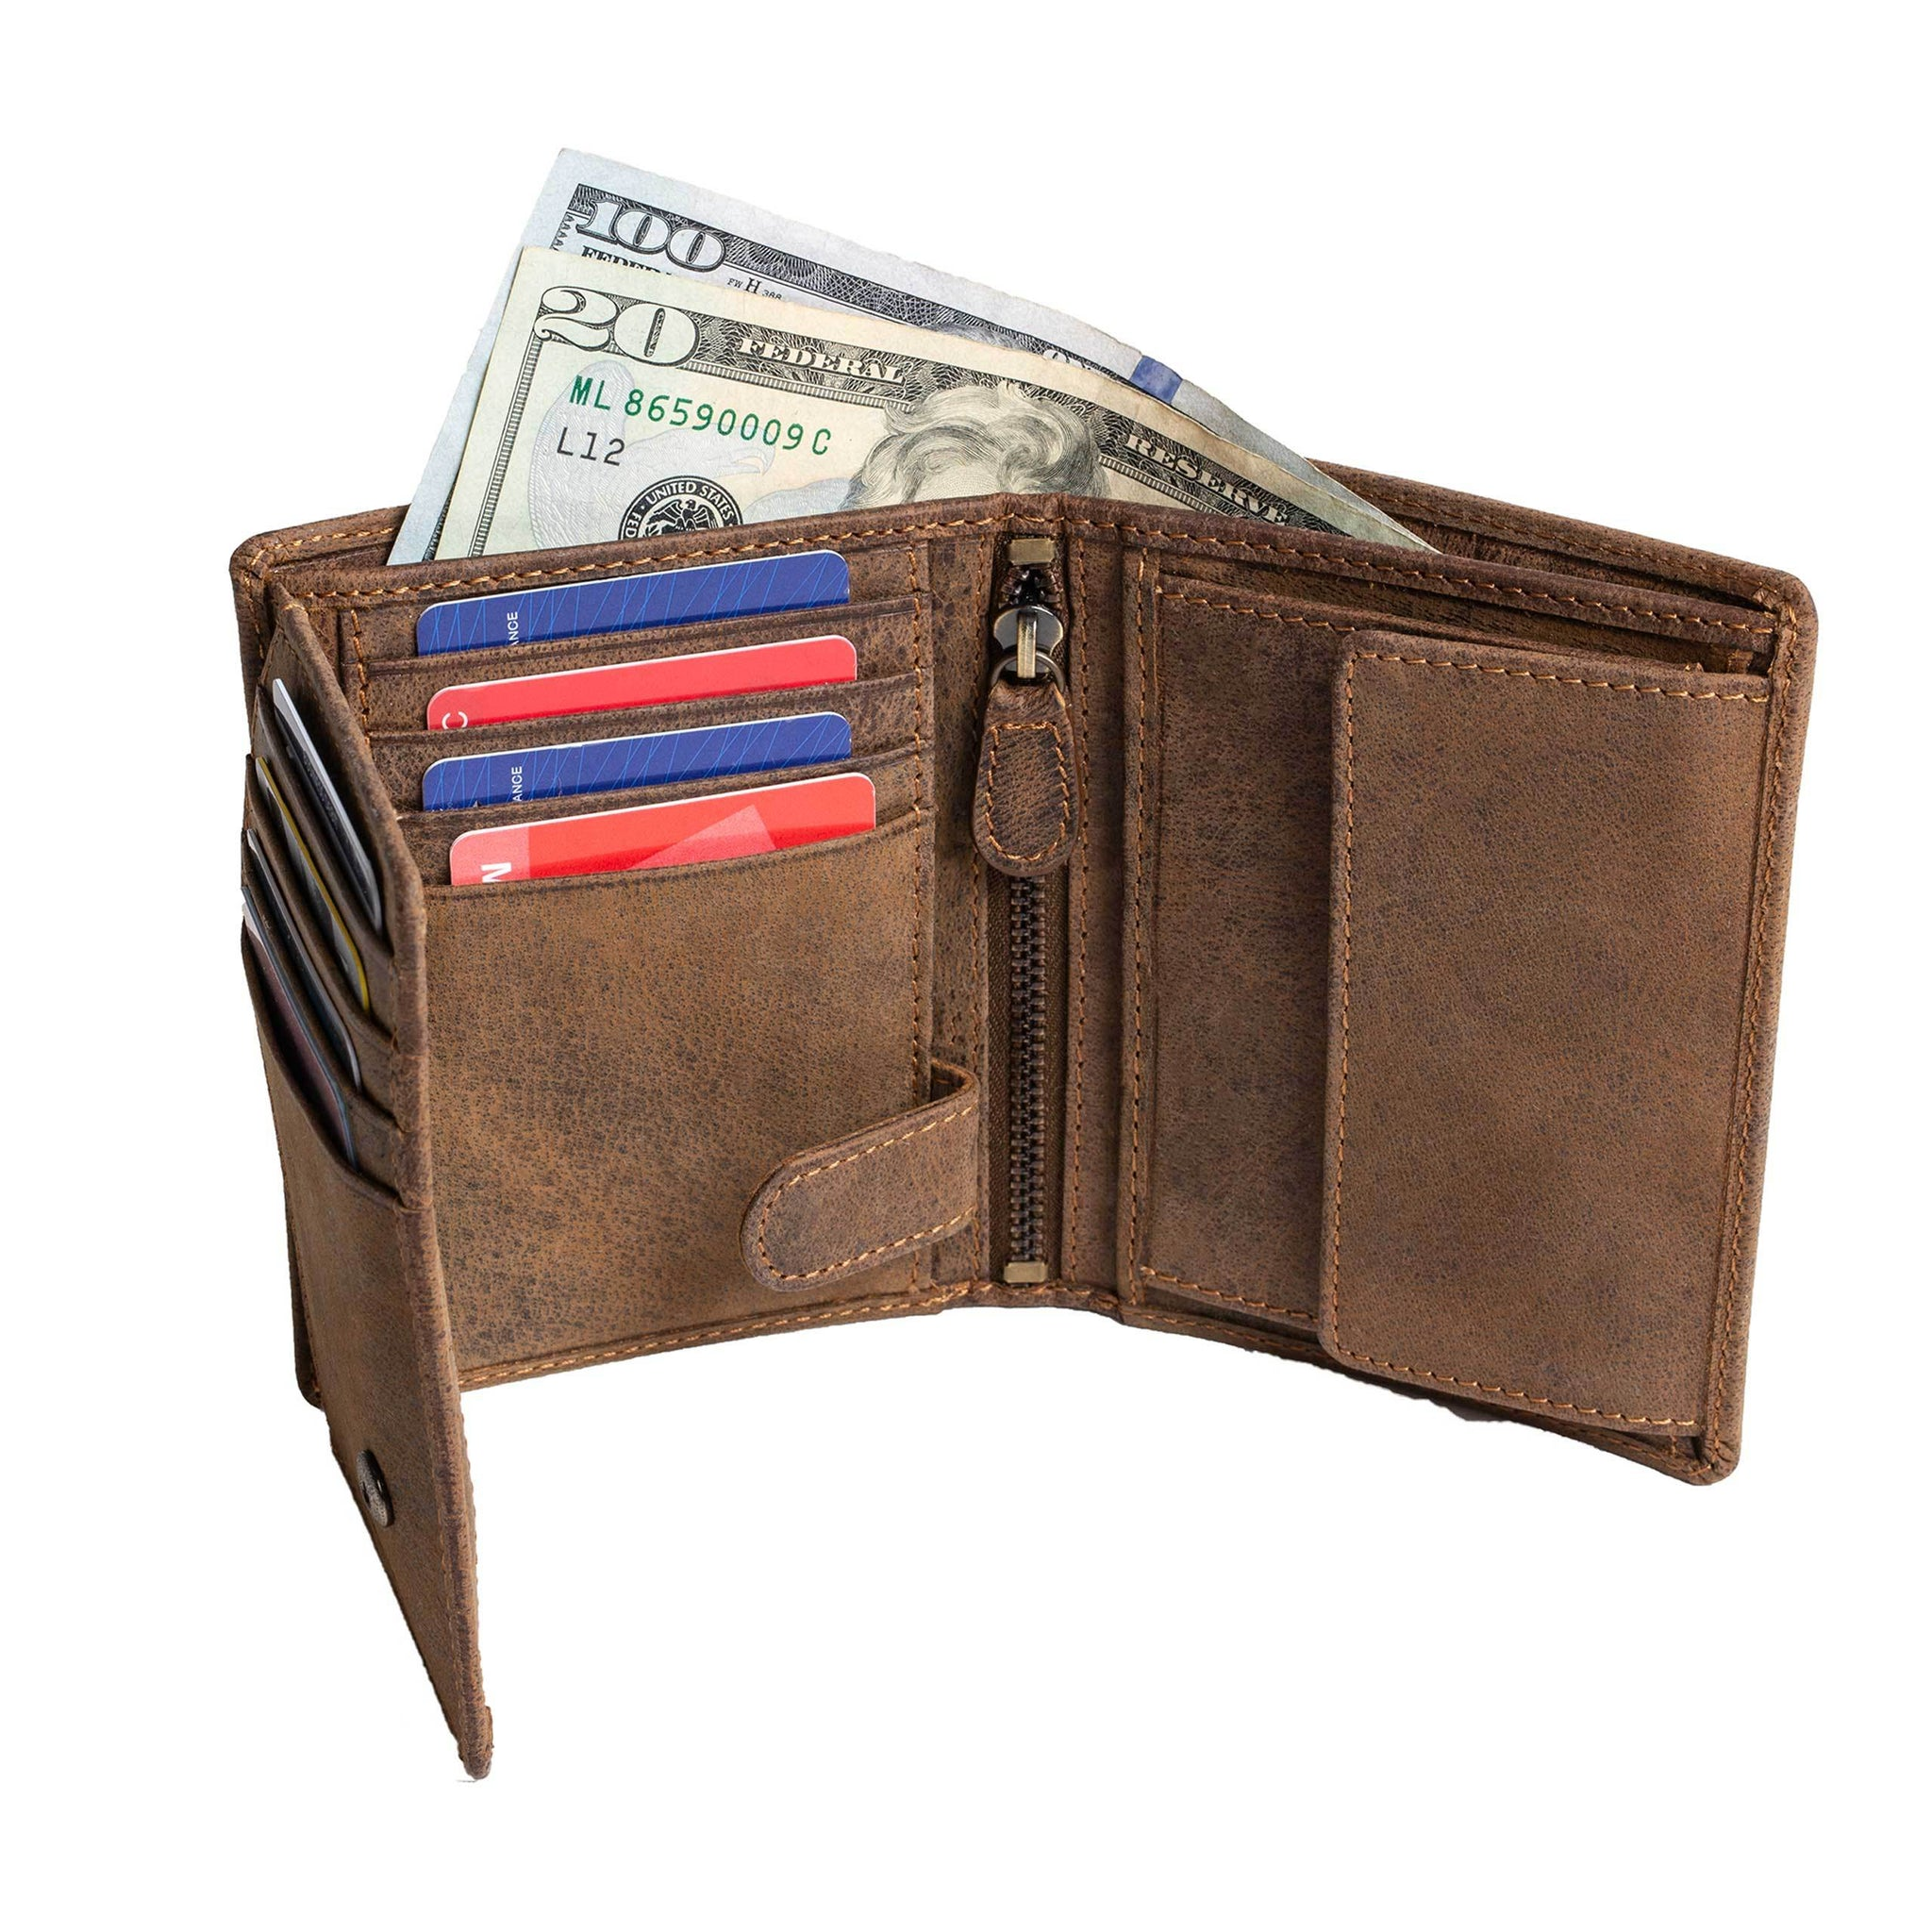 DiLoro Men's Vertical Leather Bifold Flip ID Zip Coin Wallet in Dark Hunter Brown with strong RFID Protection